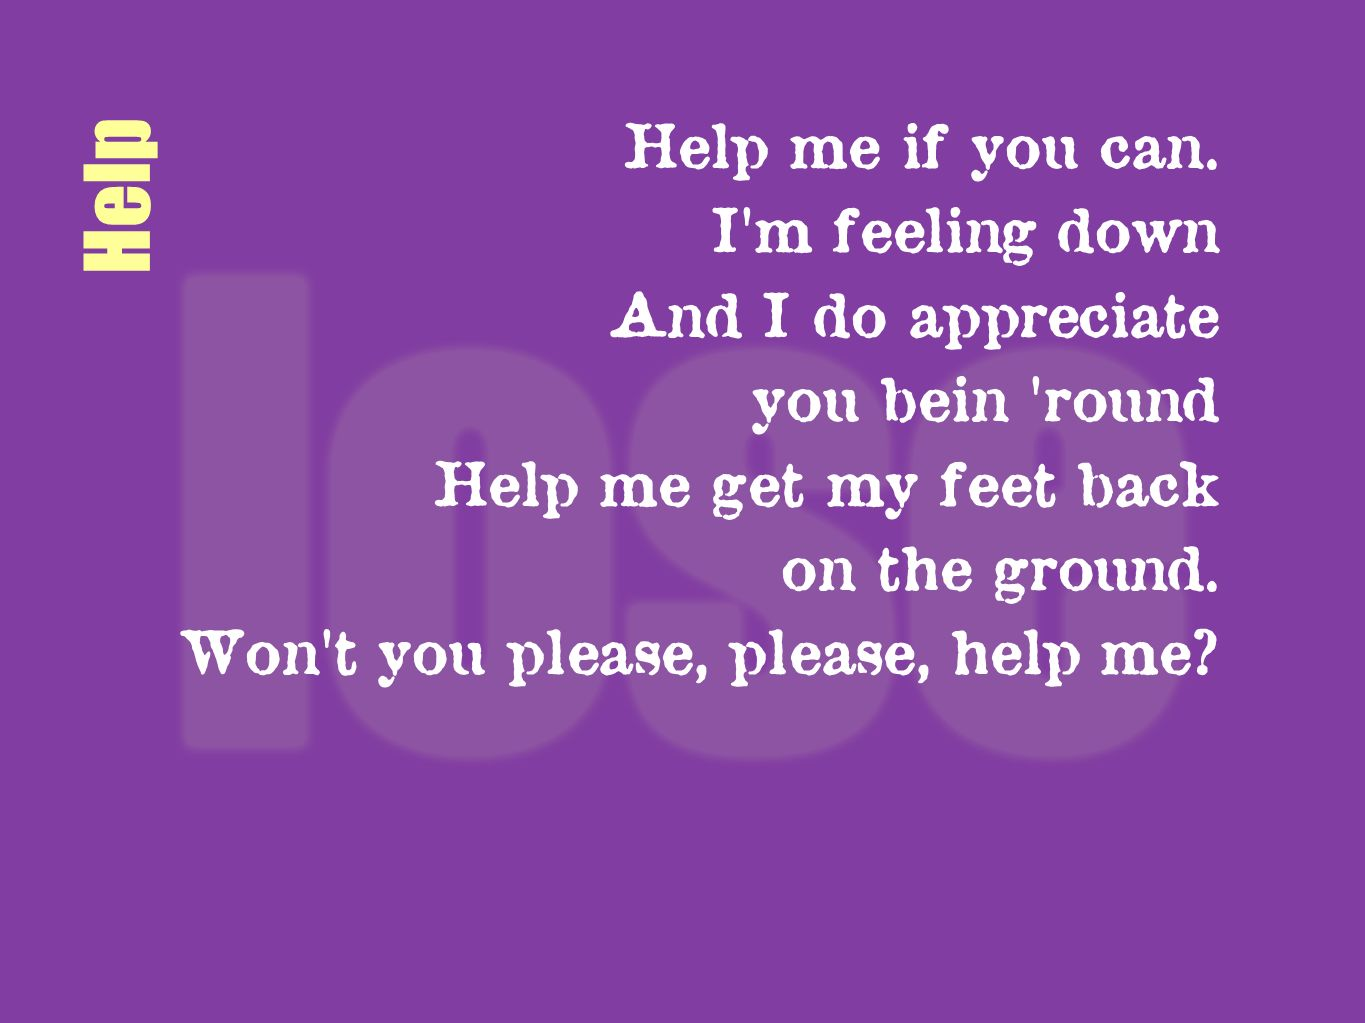 Help Help me if you can. I'm feeling down And I do appreciate you bein 'round Help me get my feet back on the ground. Won't you please, please, help m